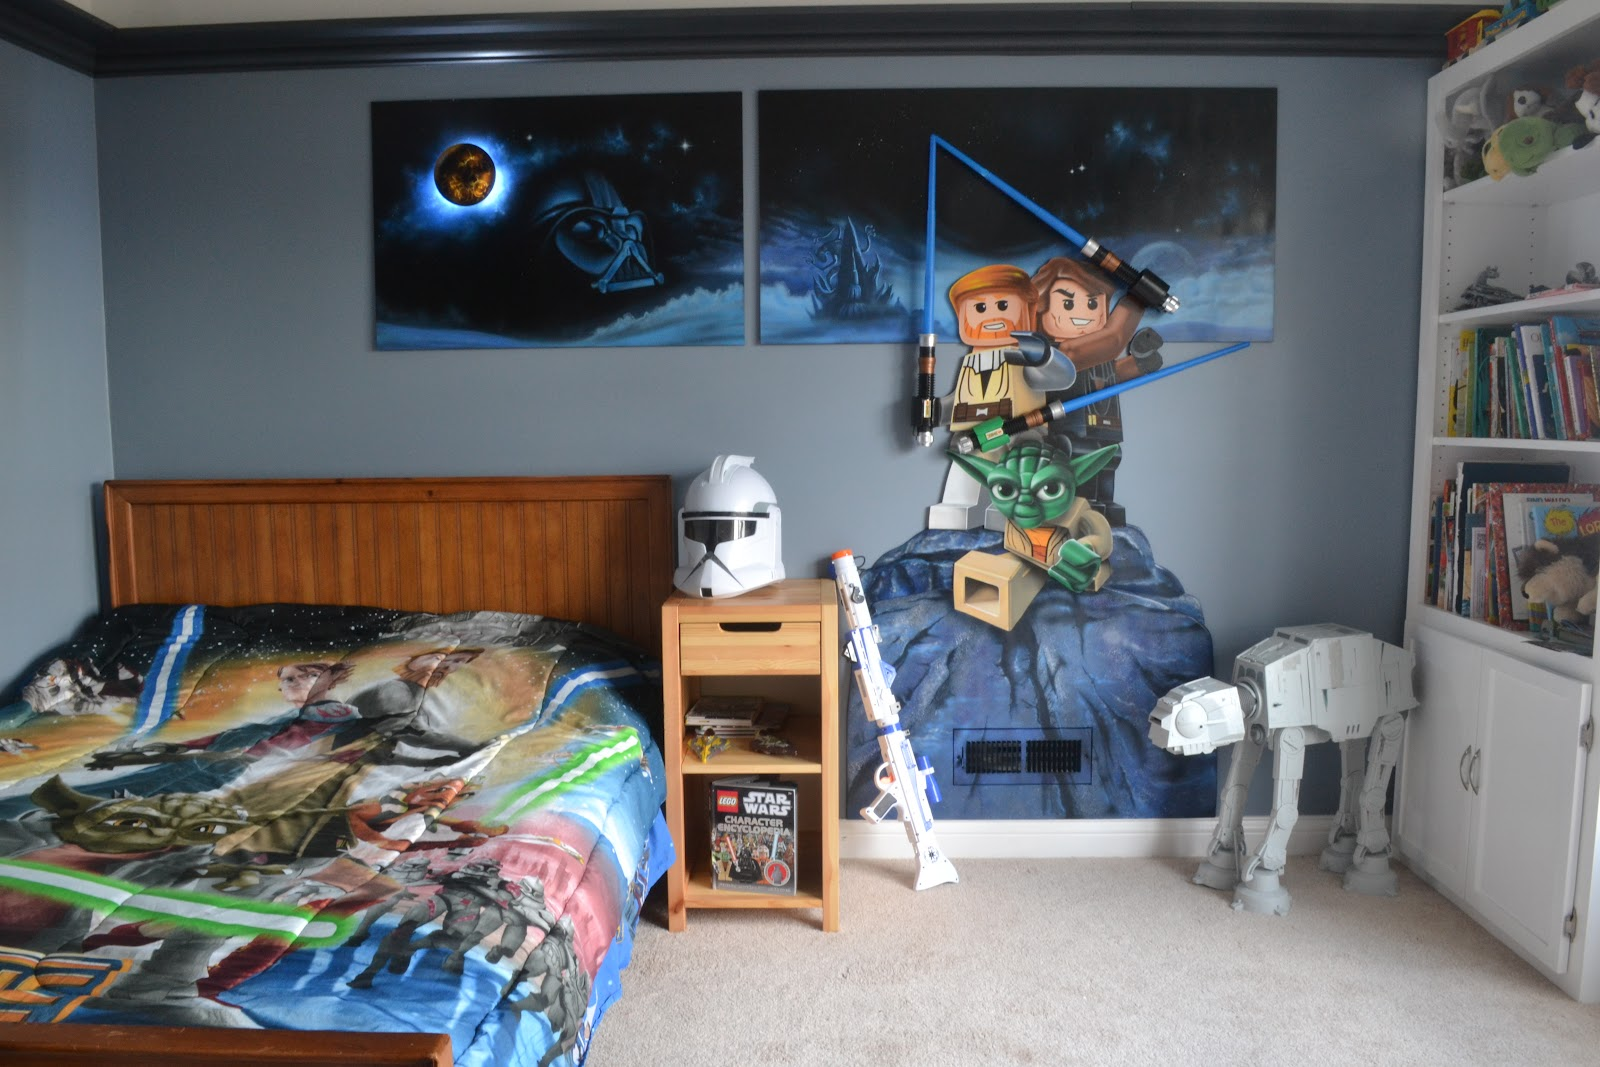 Star wars themed room decor decorating ideas Star wars bedroom ideas